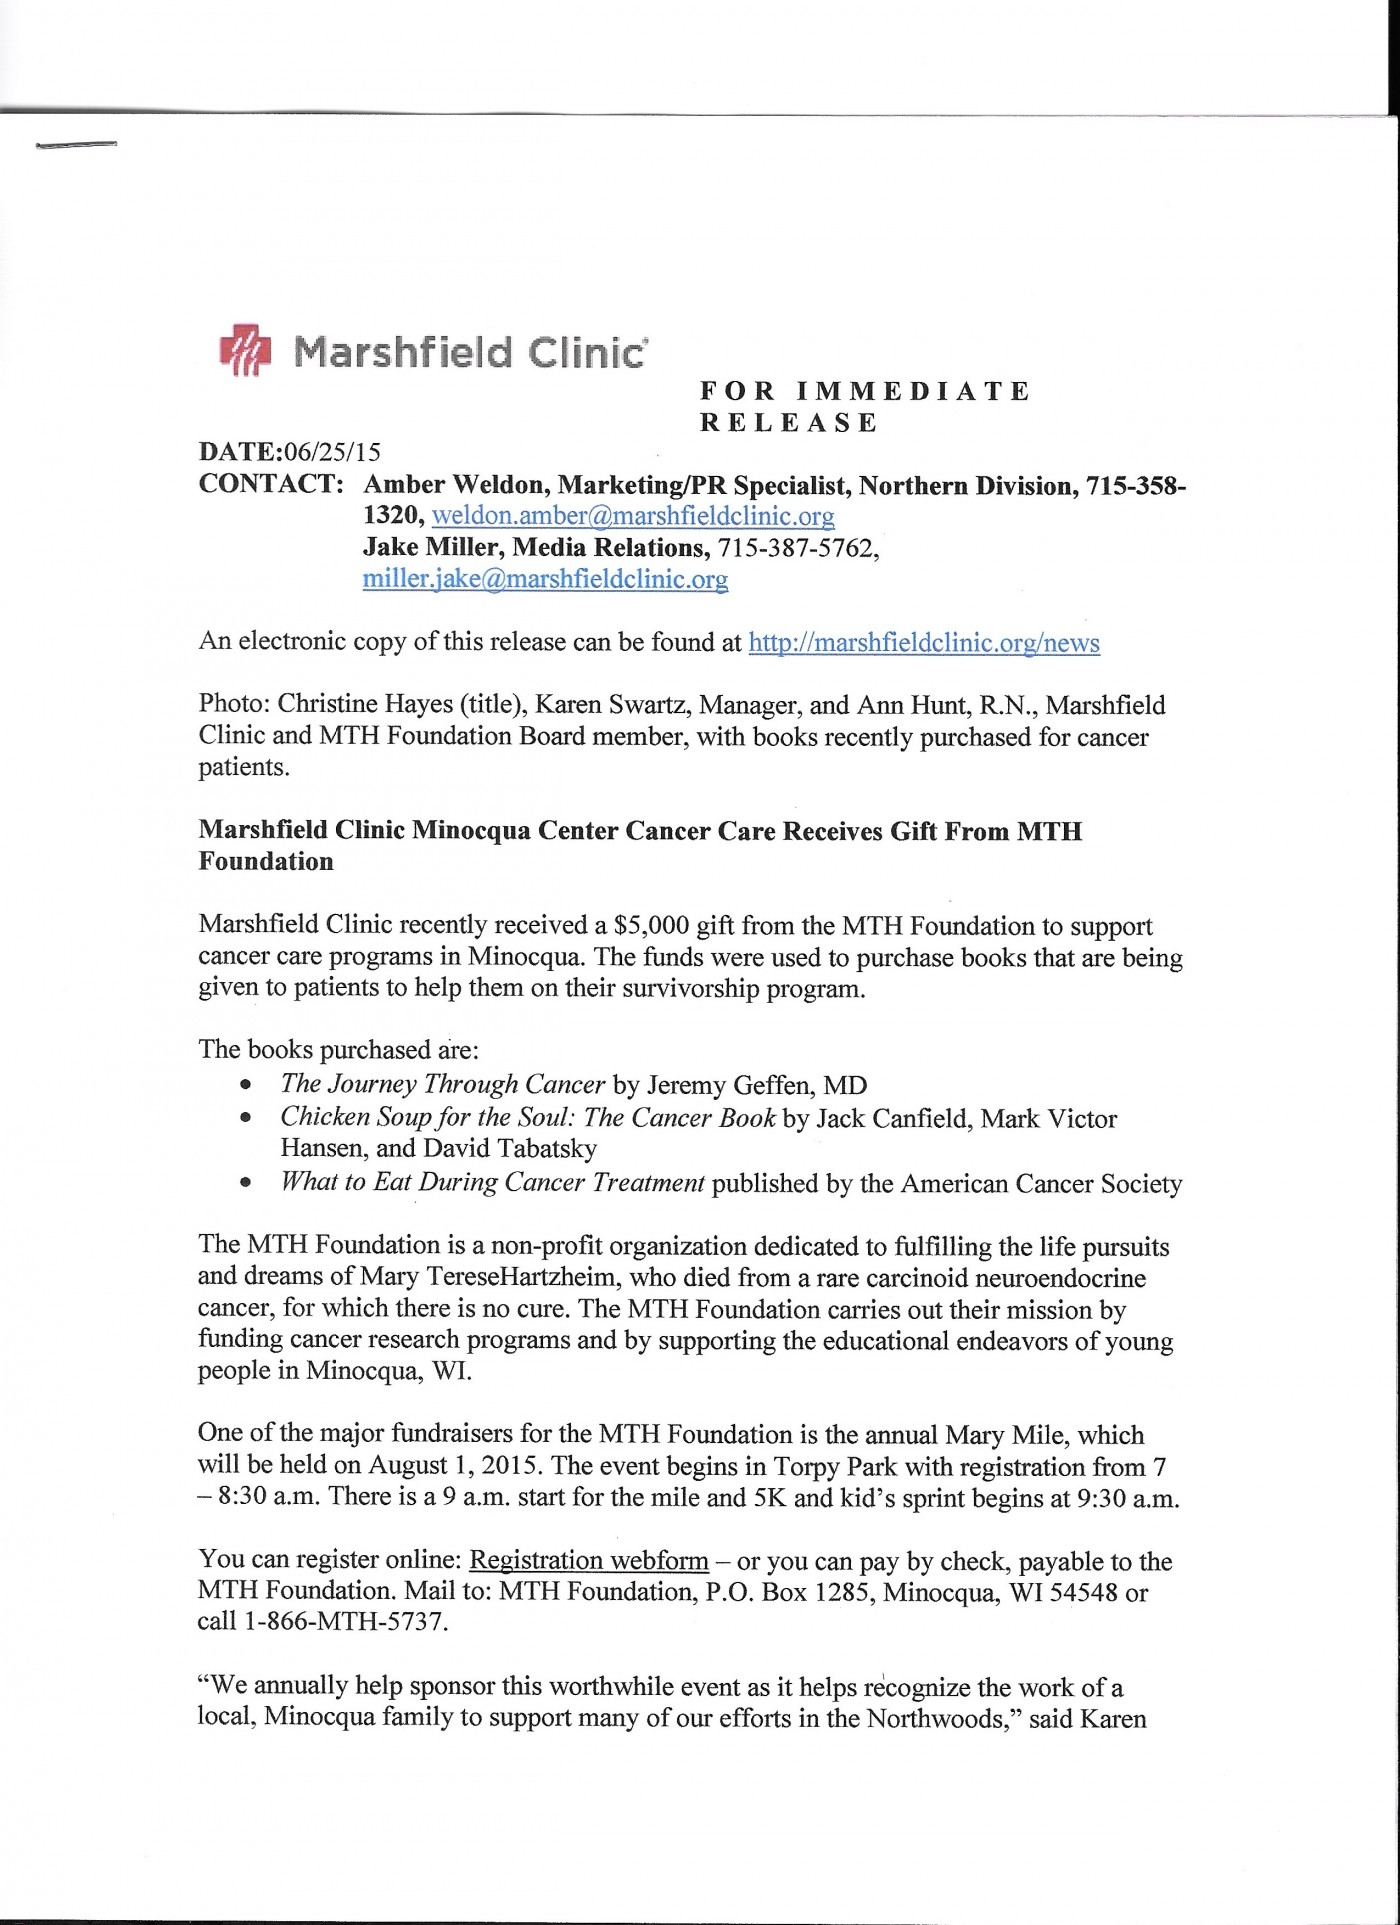 023 Research Paper Mth Marshfield Clinic Press Release Cancer Unique Outline Skin Breast Lung 1400